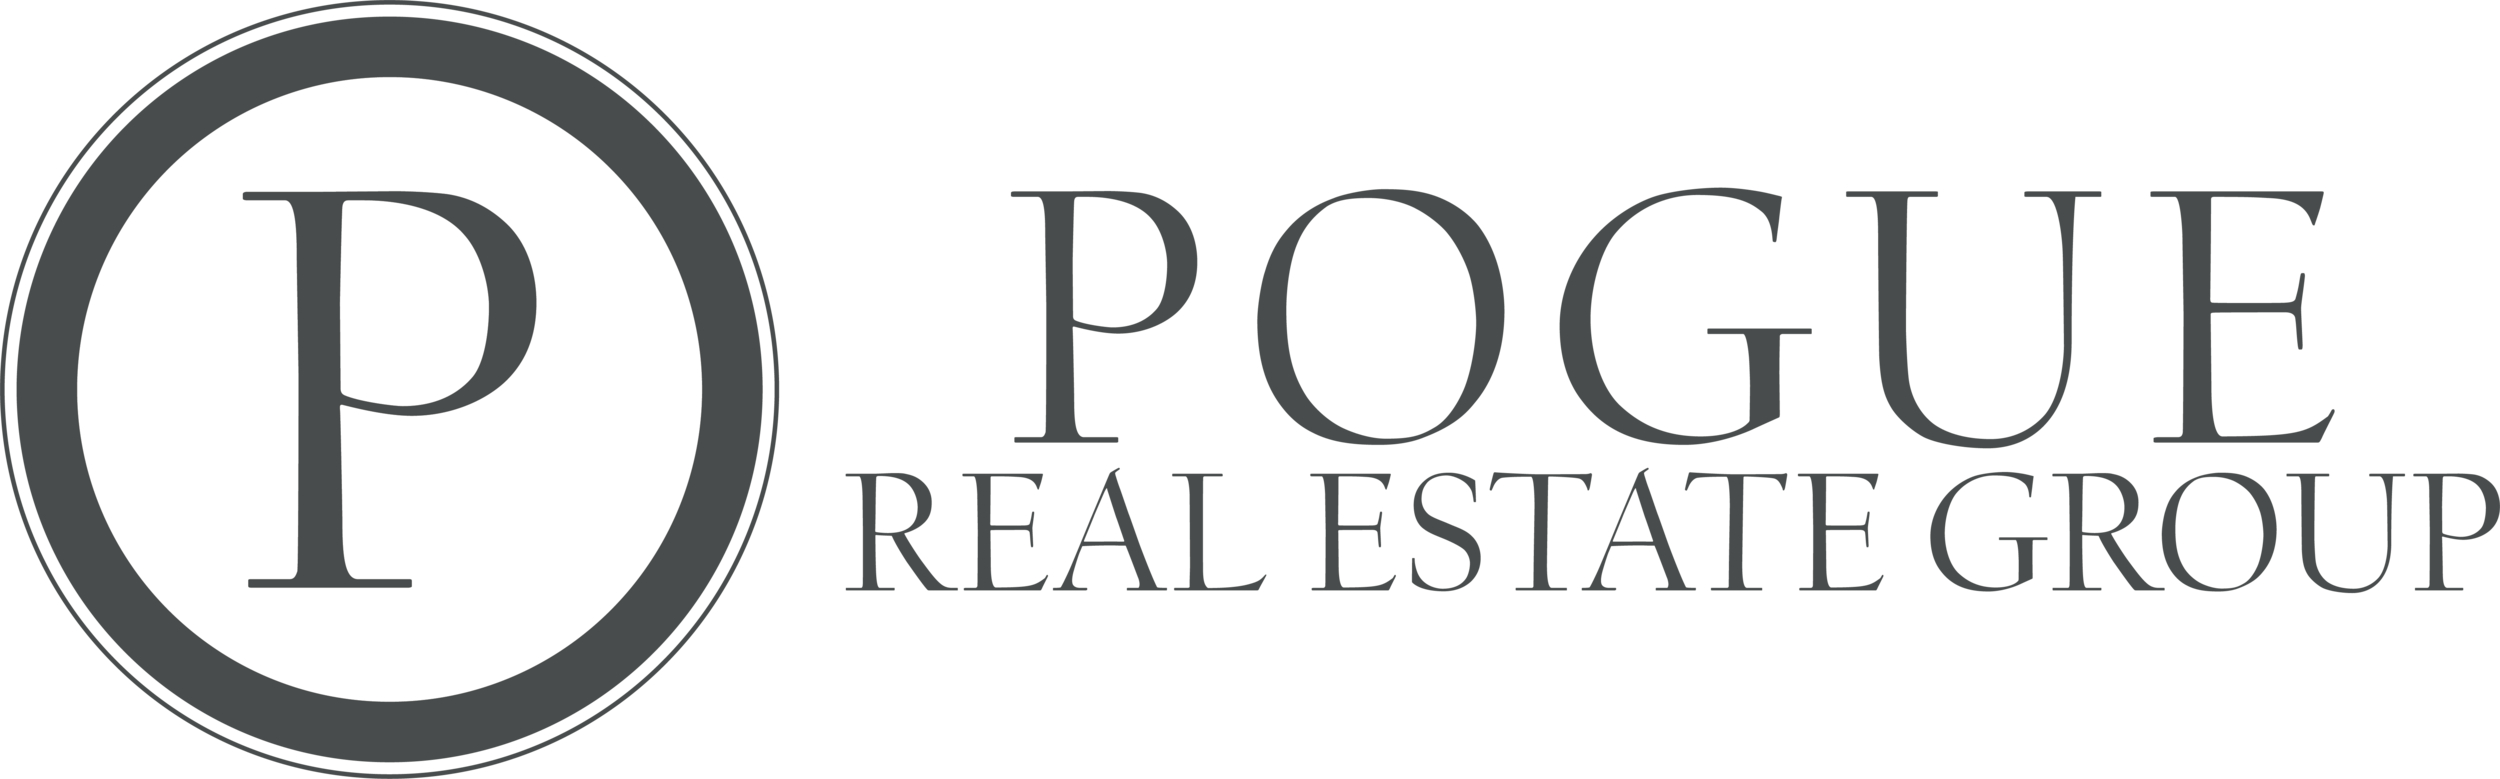 Pogue Real Estate Group - Coquitlam Luxury Real Estate